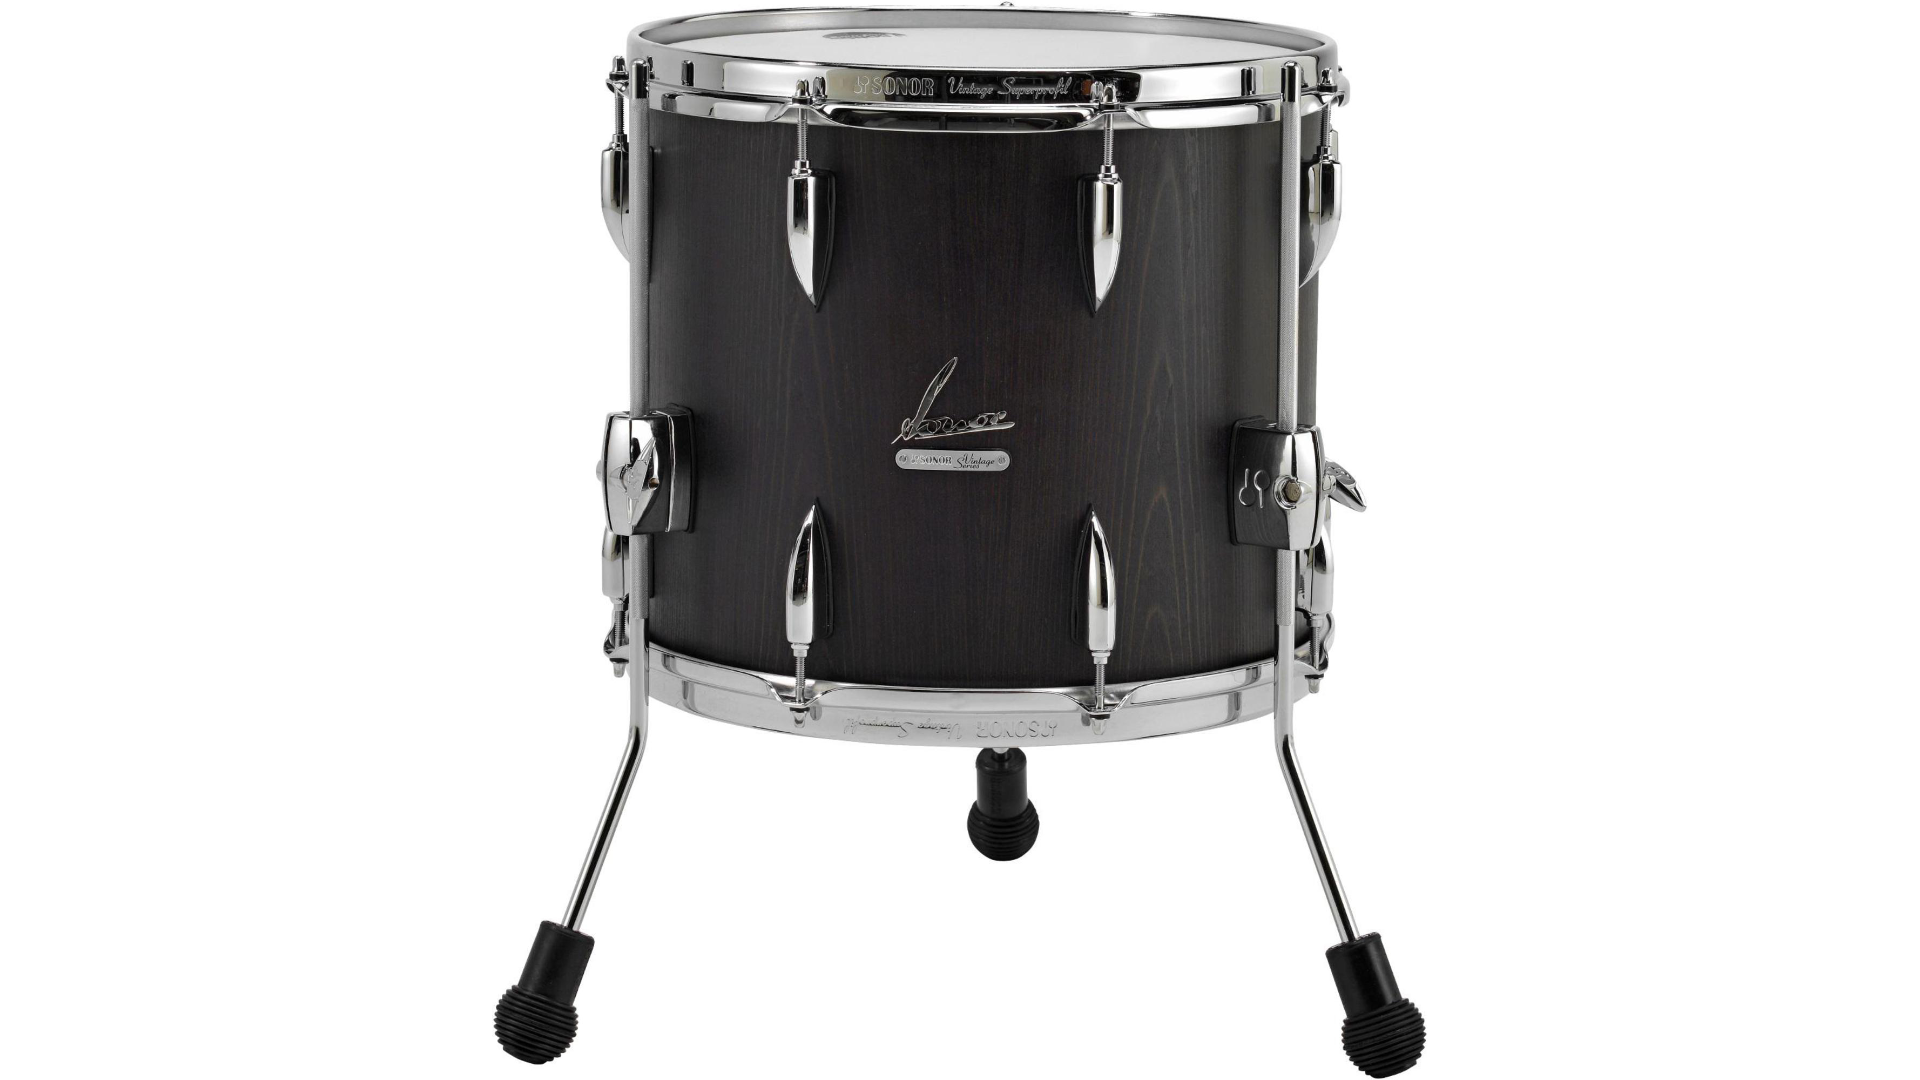 Sonor vintage series floor tom 16 x 14 in vintage onyx for 16x14 floor tom